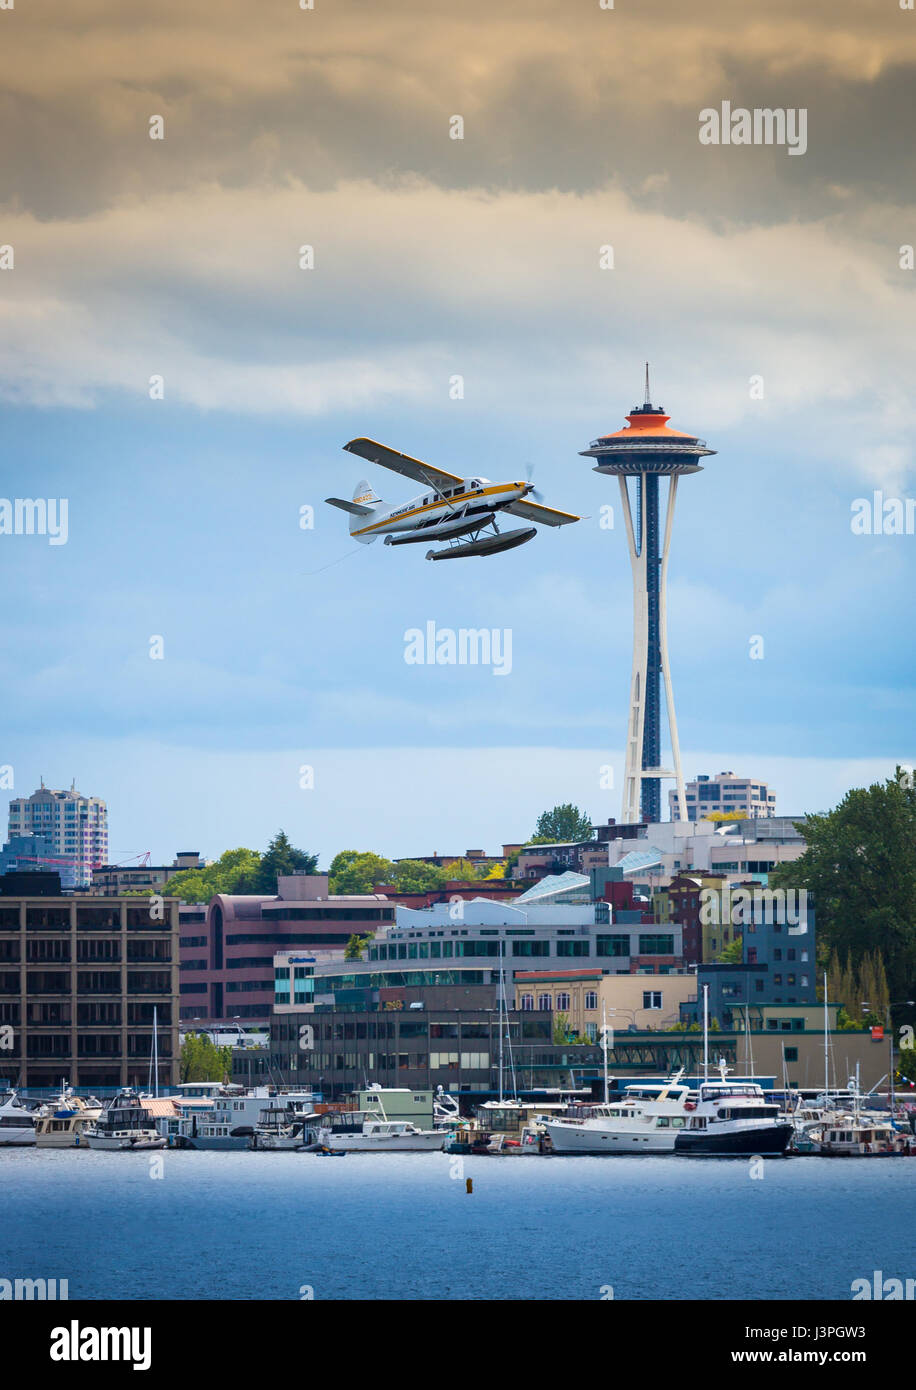 Seaplane taking off from Seattle's Lake Union with Space Needle in background - Stock Image